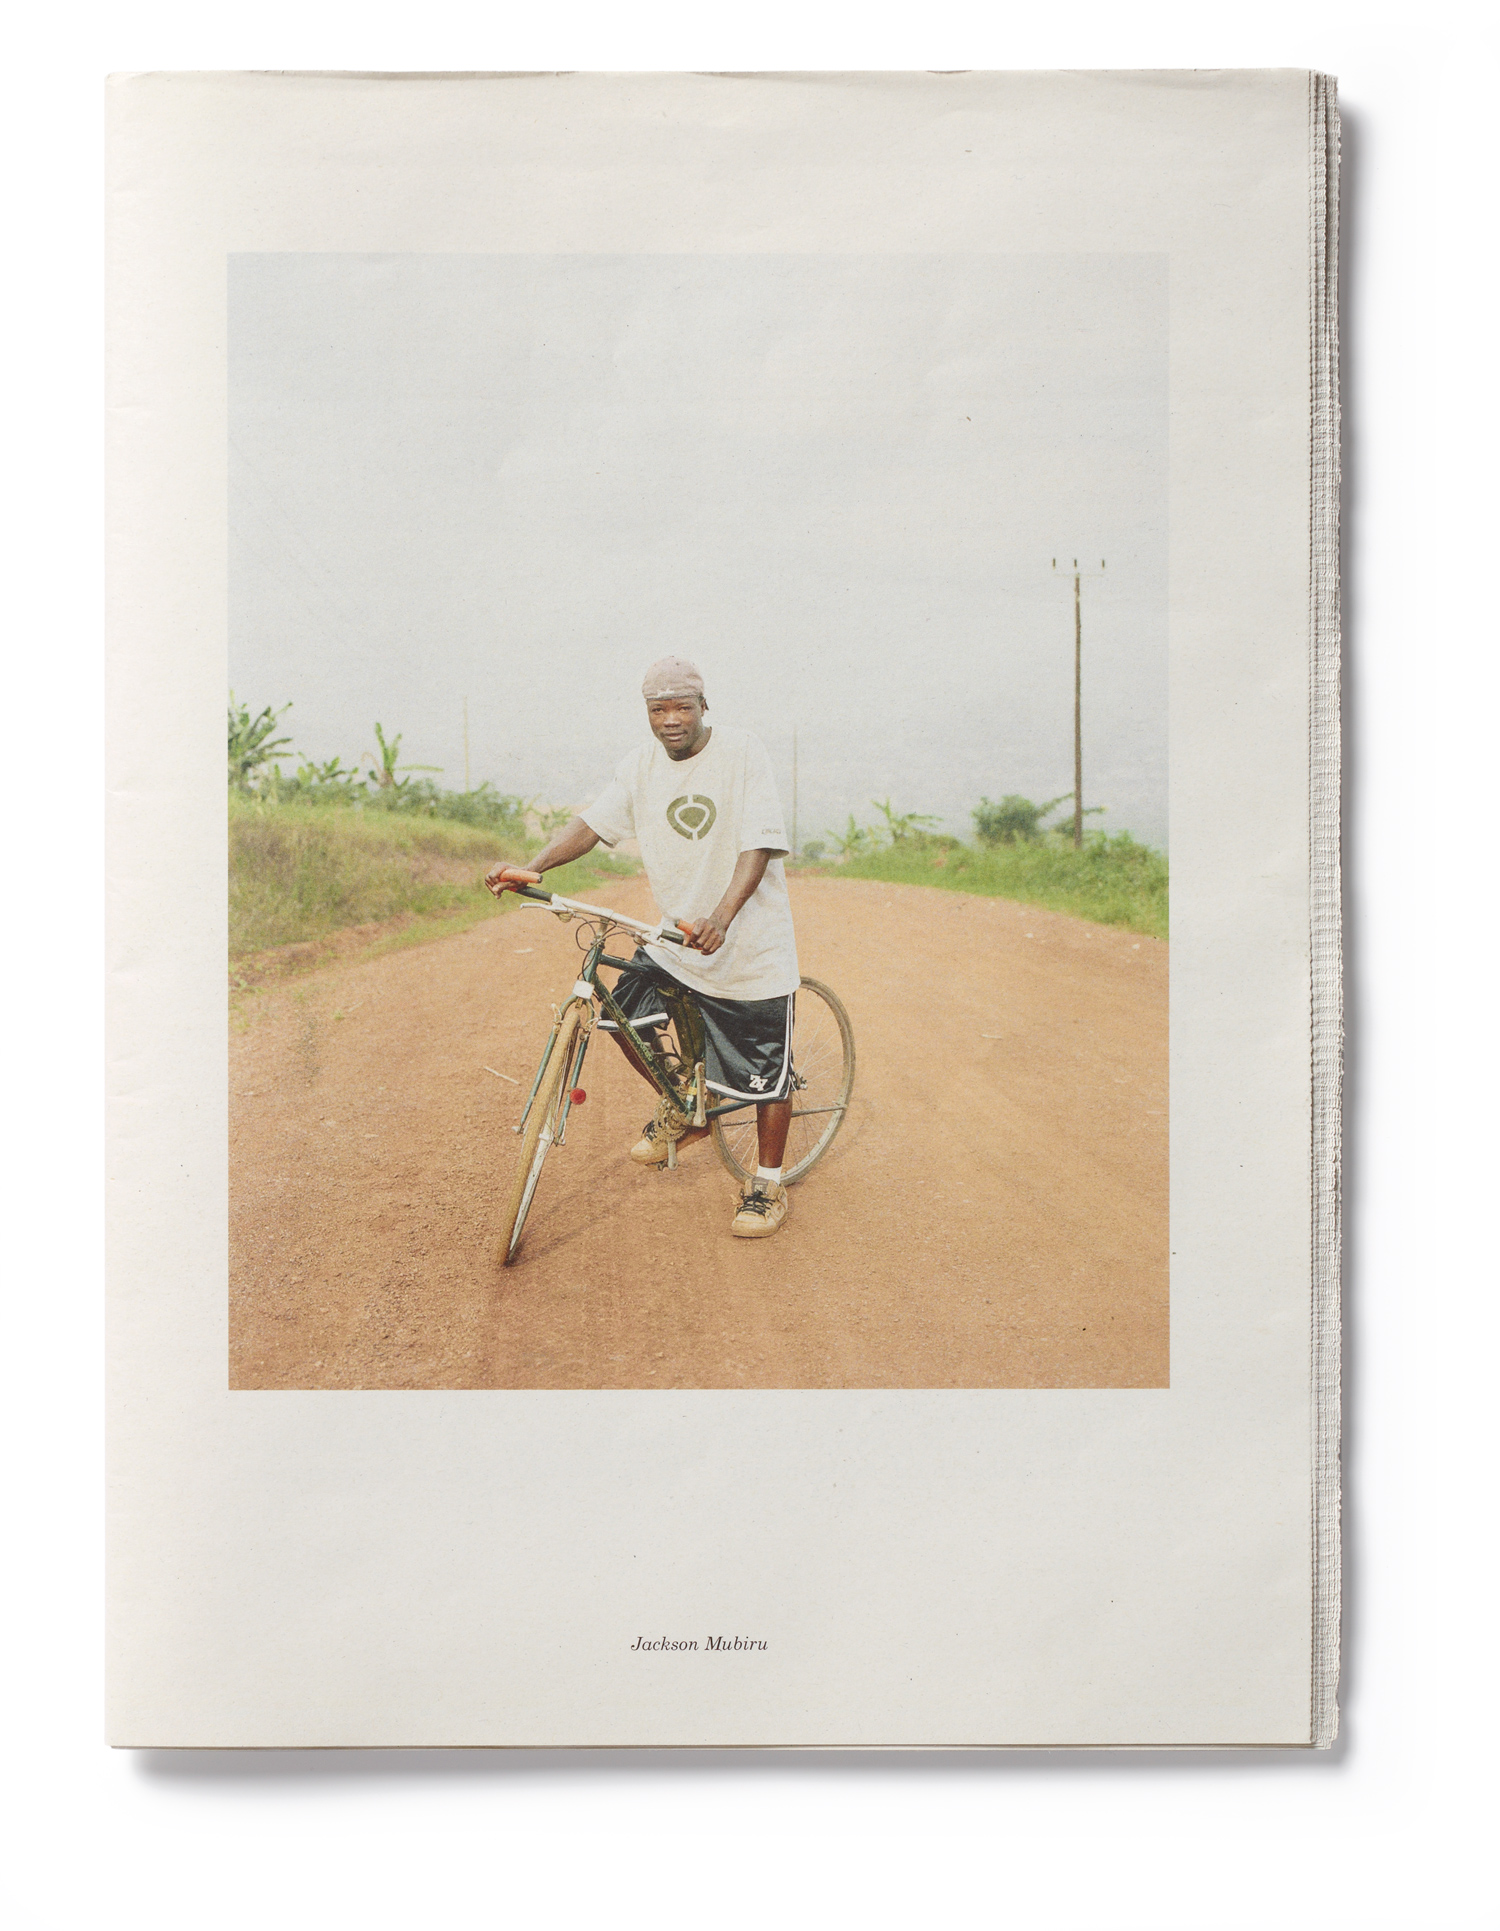 A portrait of Jackson Mubiru from Yann Gross's book Kitintale, which was second runner-up in the documentary category.